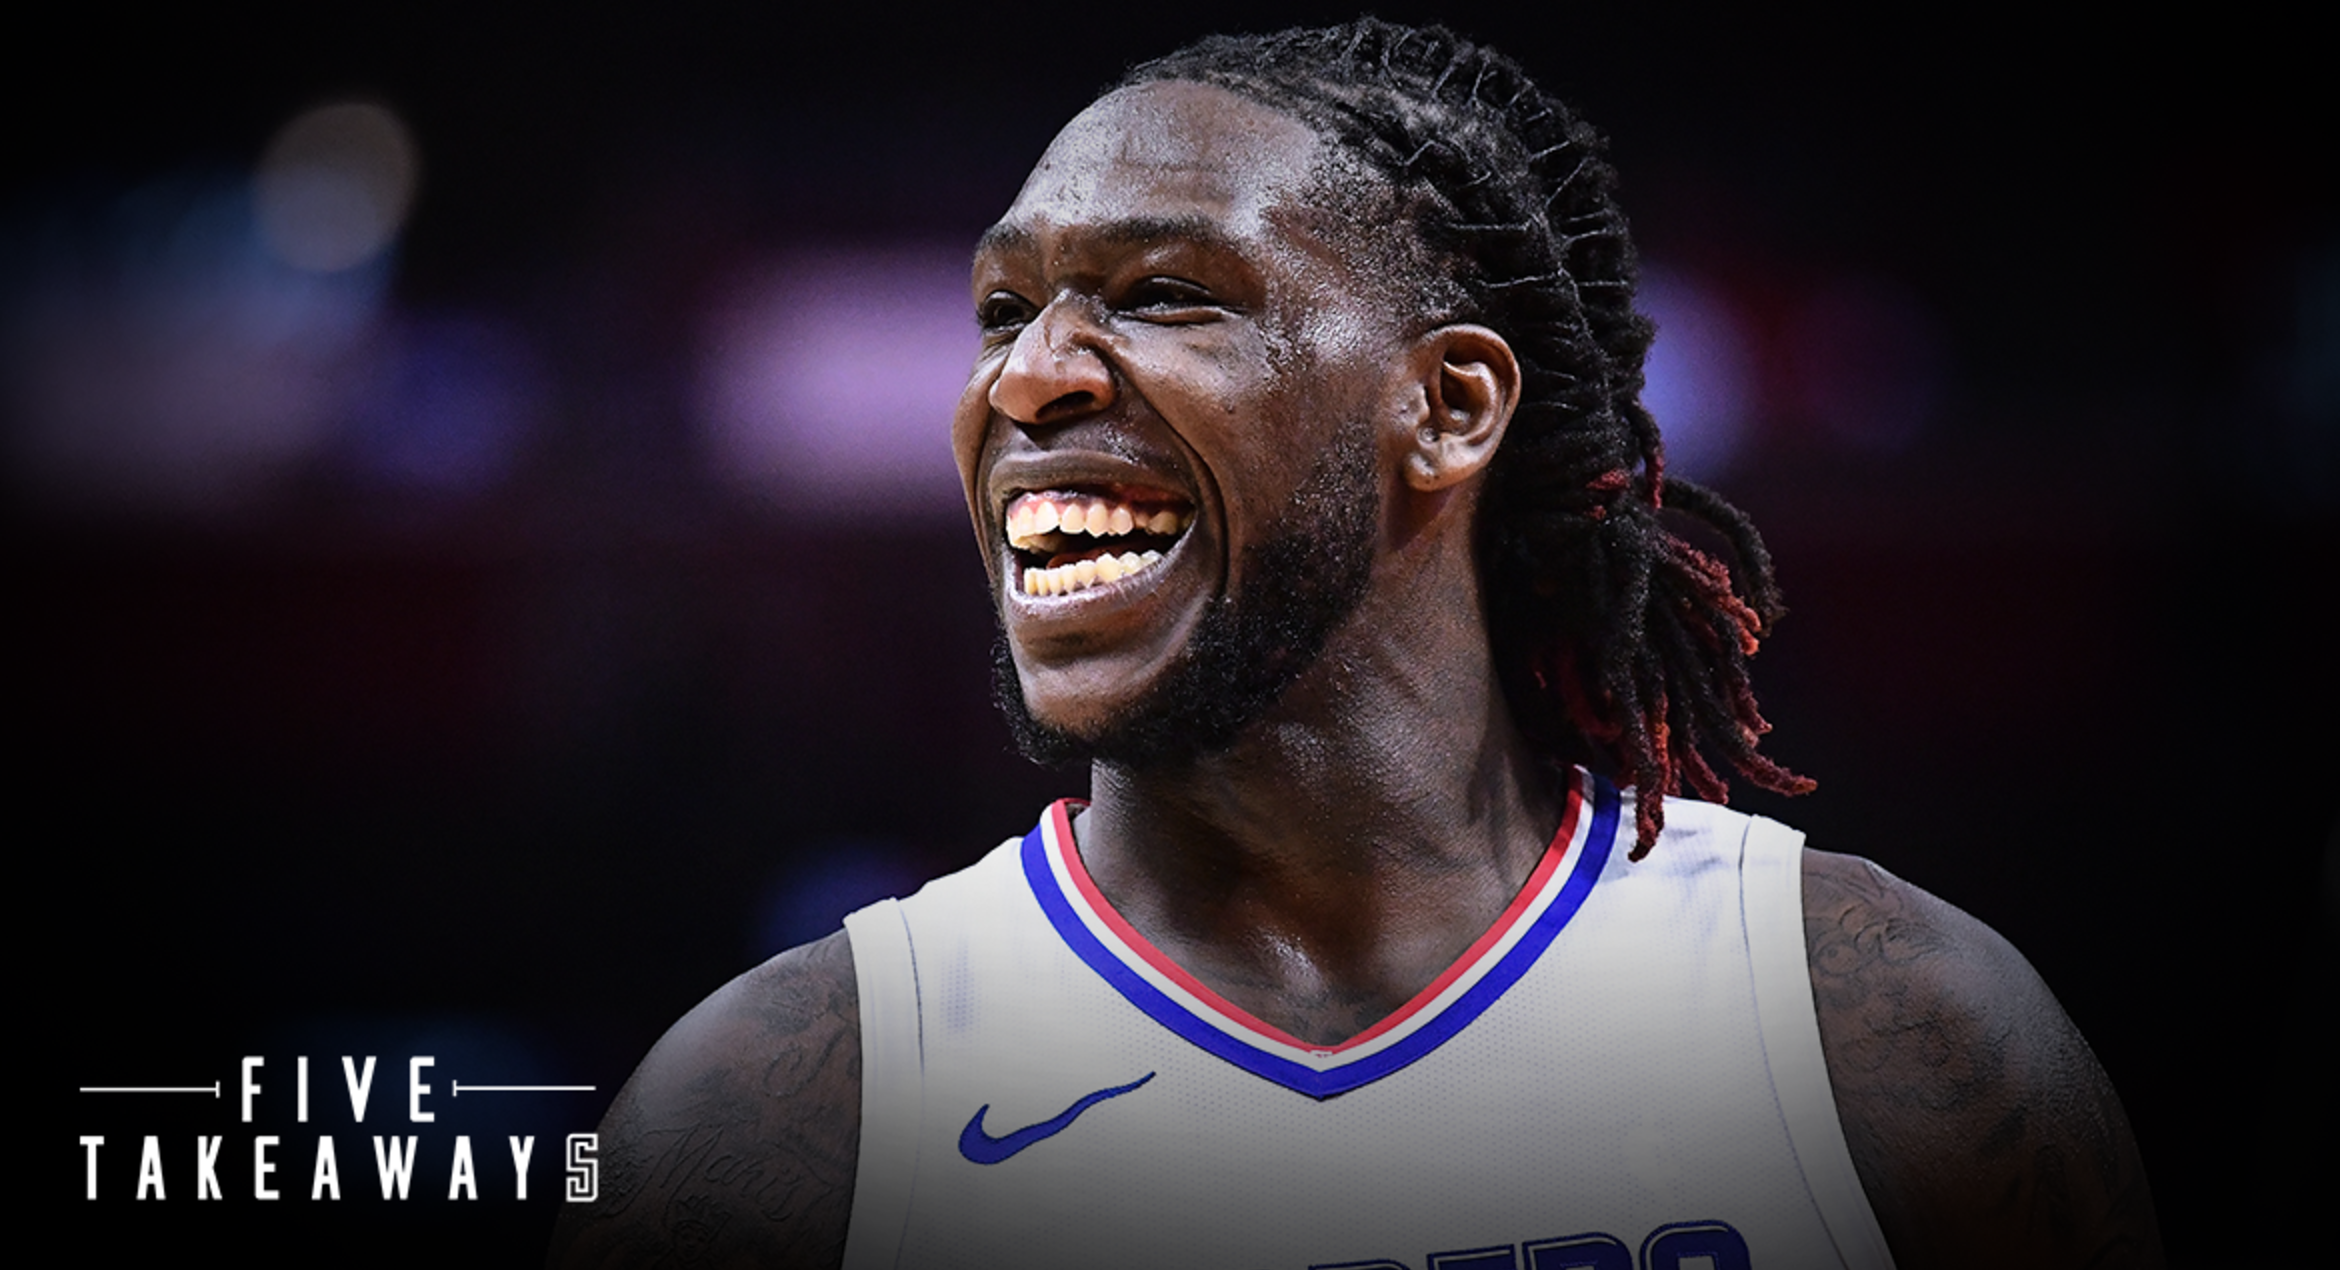 Five Takeaways: Happy Birthday Montrezl